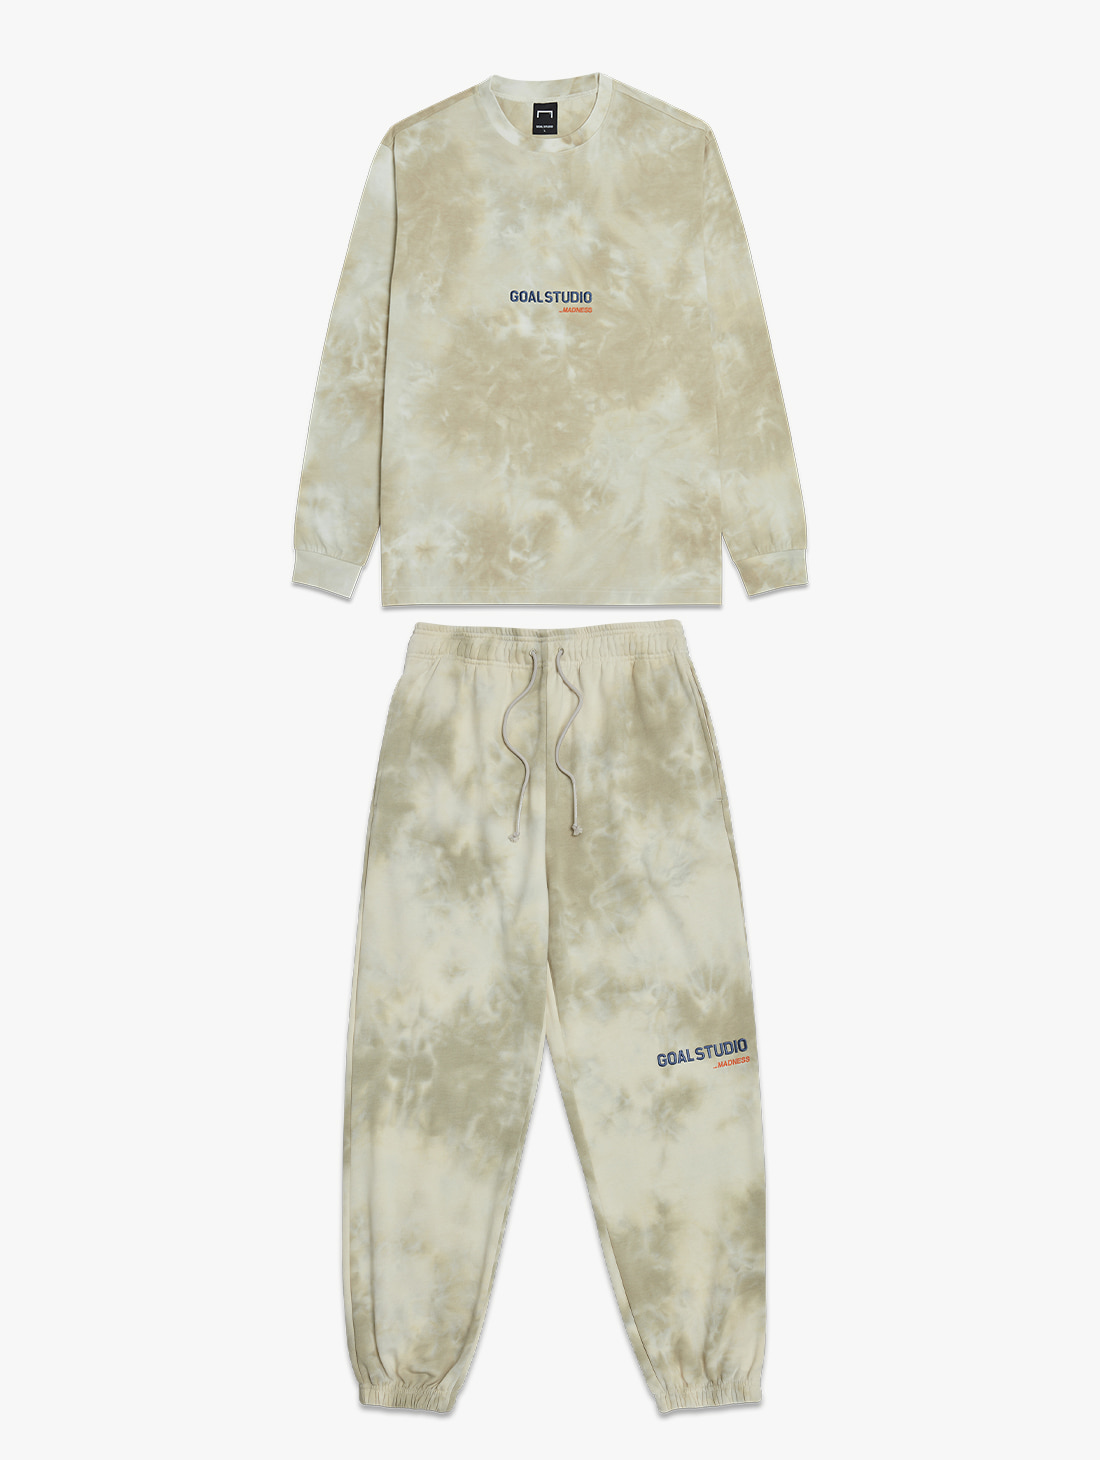 GOALSTUDIO [10% OFF] TIE DYE LONG SLEEVE TEE & TIE DYE JOGGER PANTS SET